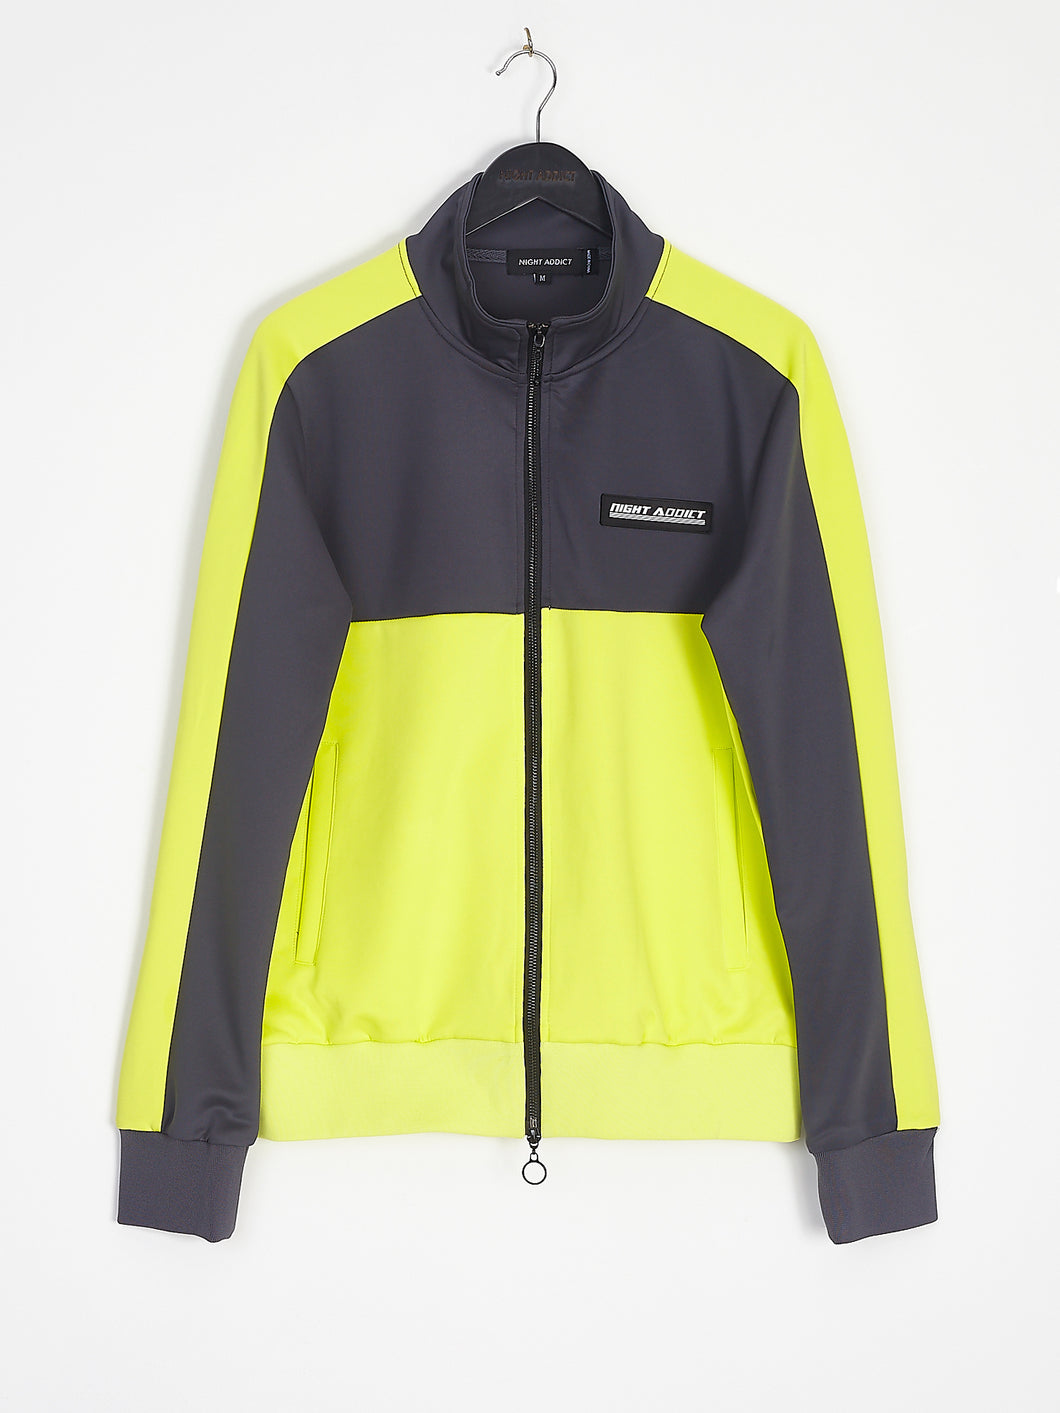 NIGHT ADDICT NEON PANEL TRACKSUIT TOP